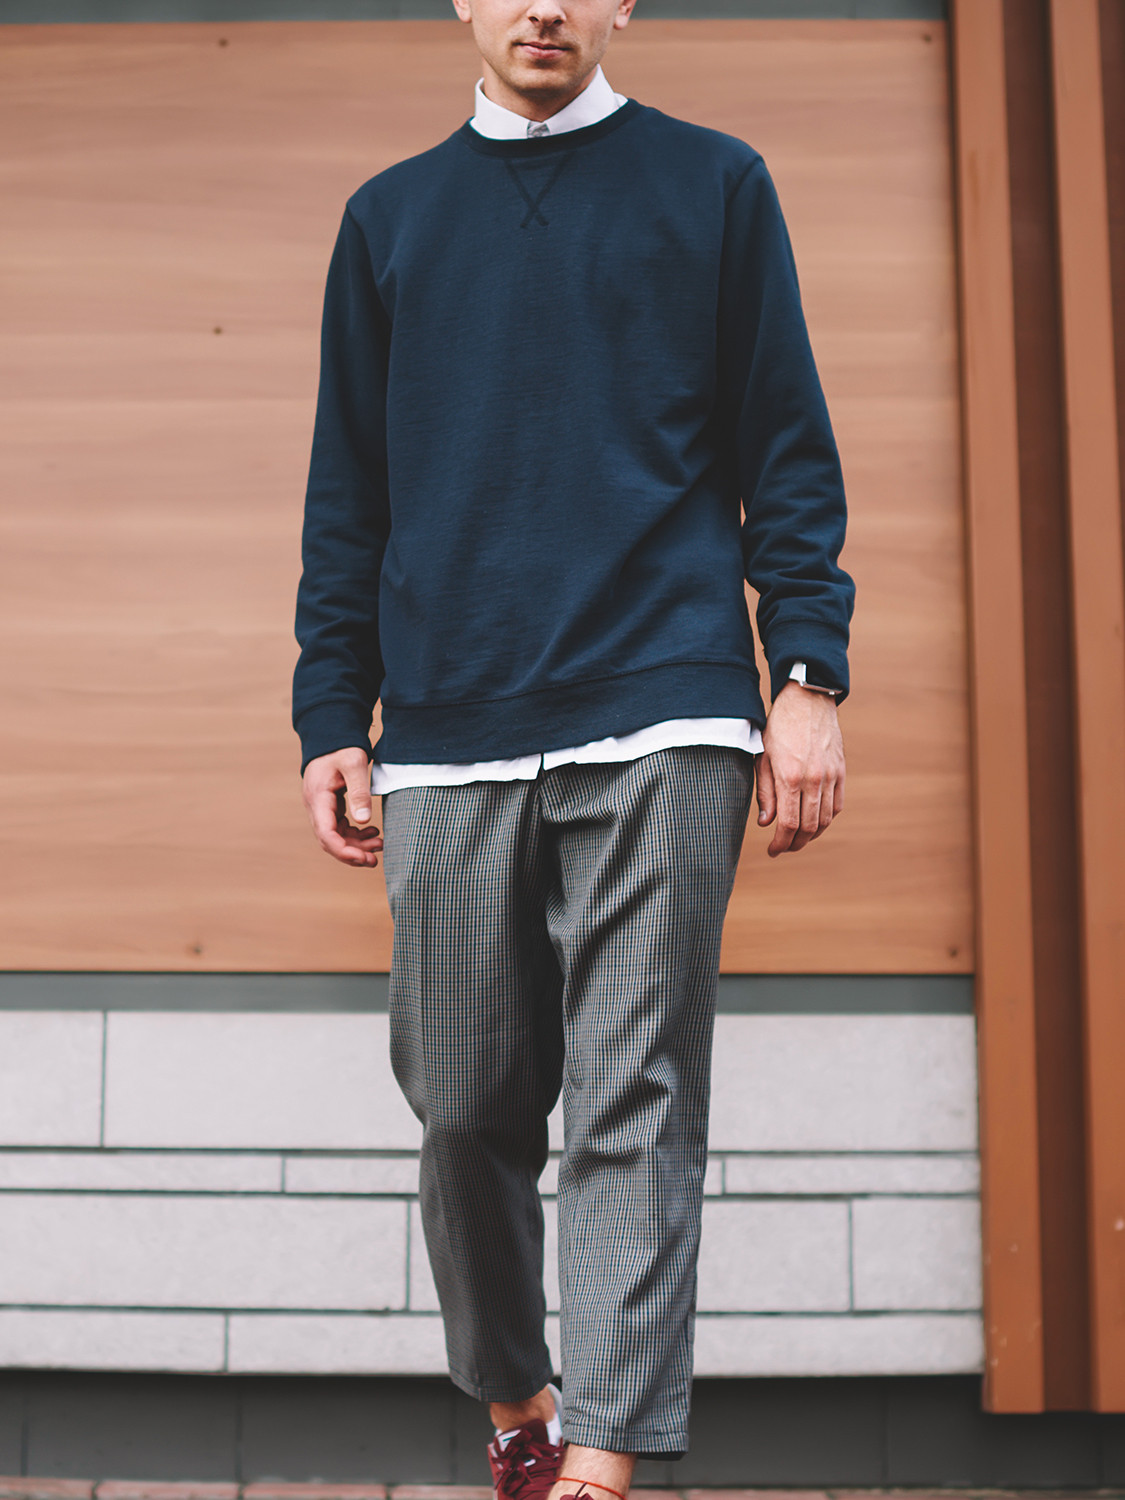 Men's outfit idea for 2021 with navy plain sweatshirt, white casual shirt, grey formal trousers, red everyday trainers. Suitable for spring, autumn and winter.